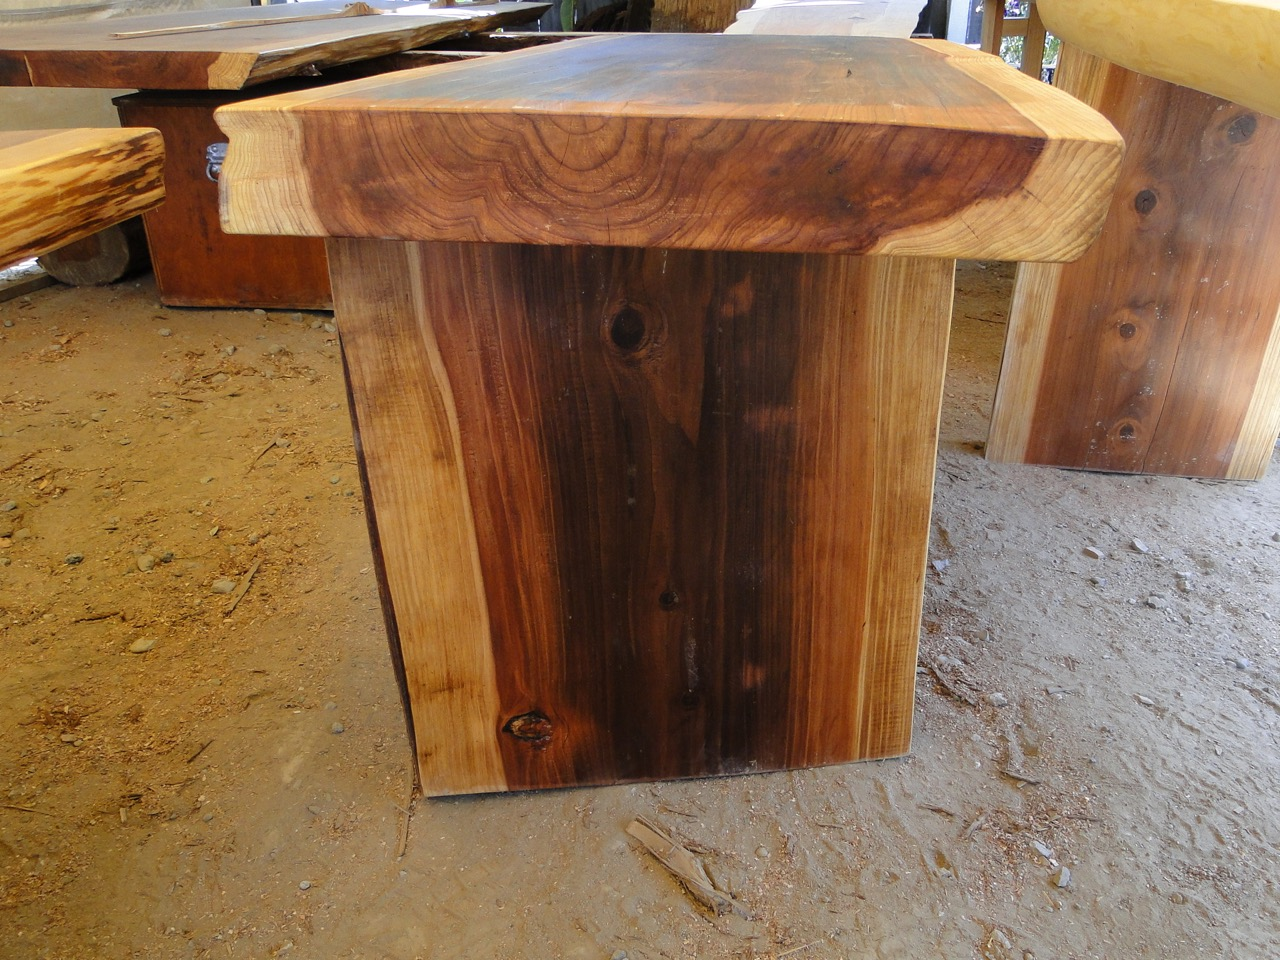 A1 Stump Reclaimed Furniture - 019